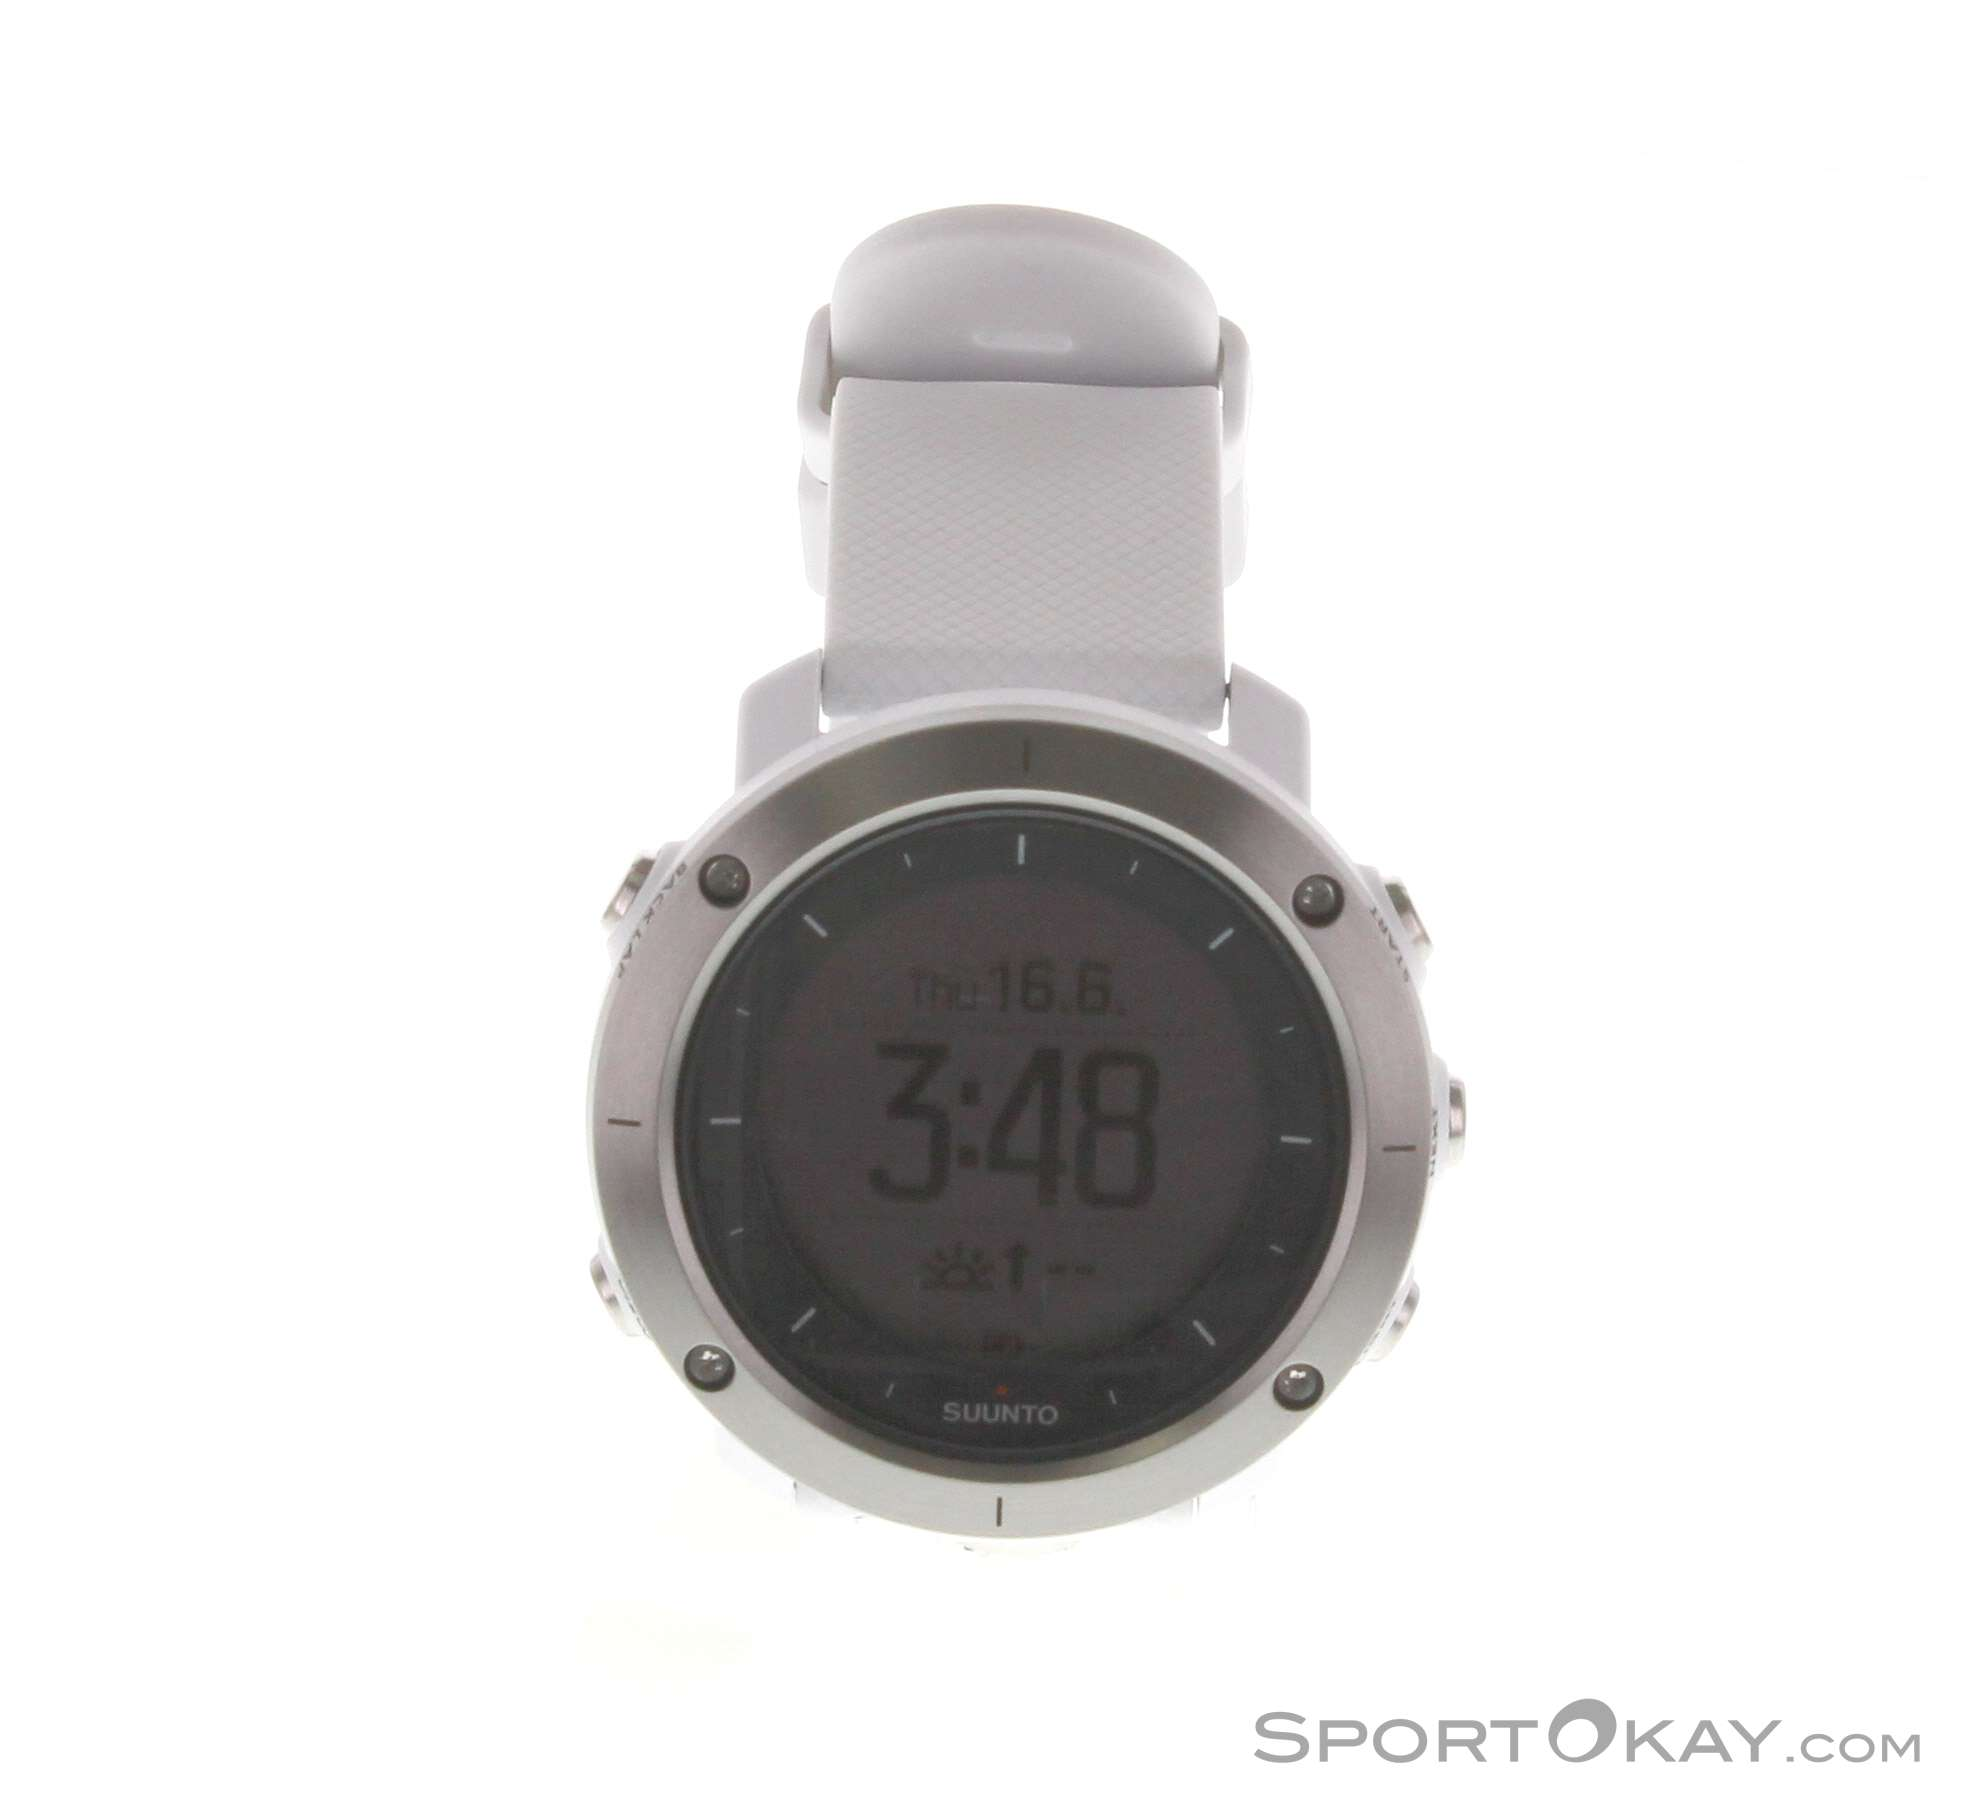 Suunto Traverse Outdoor Watch Running Heart Rate Watches Black With Gps Glonass White Male 0029 10065